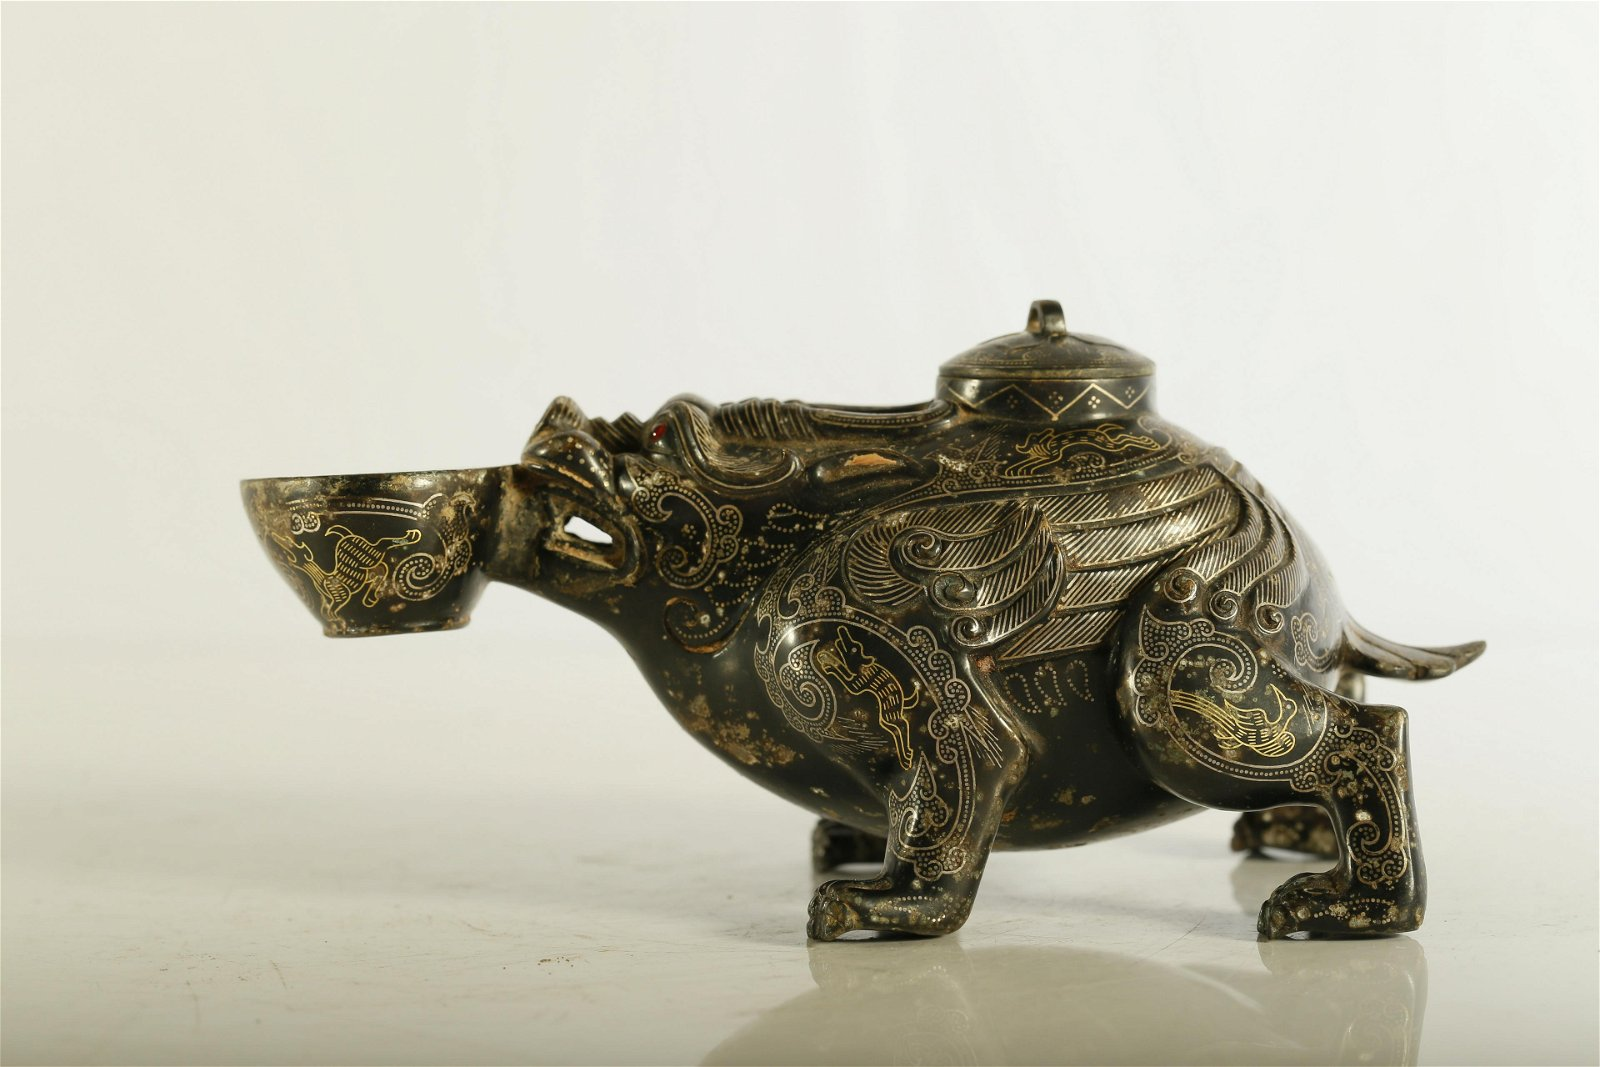 A Very Rare and Superb Gold and Silver-Inlaid Bronze